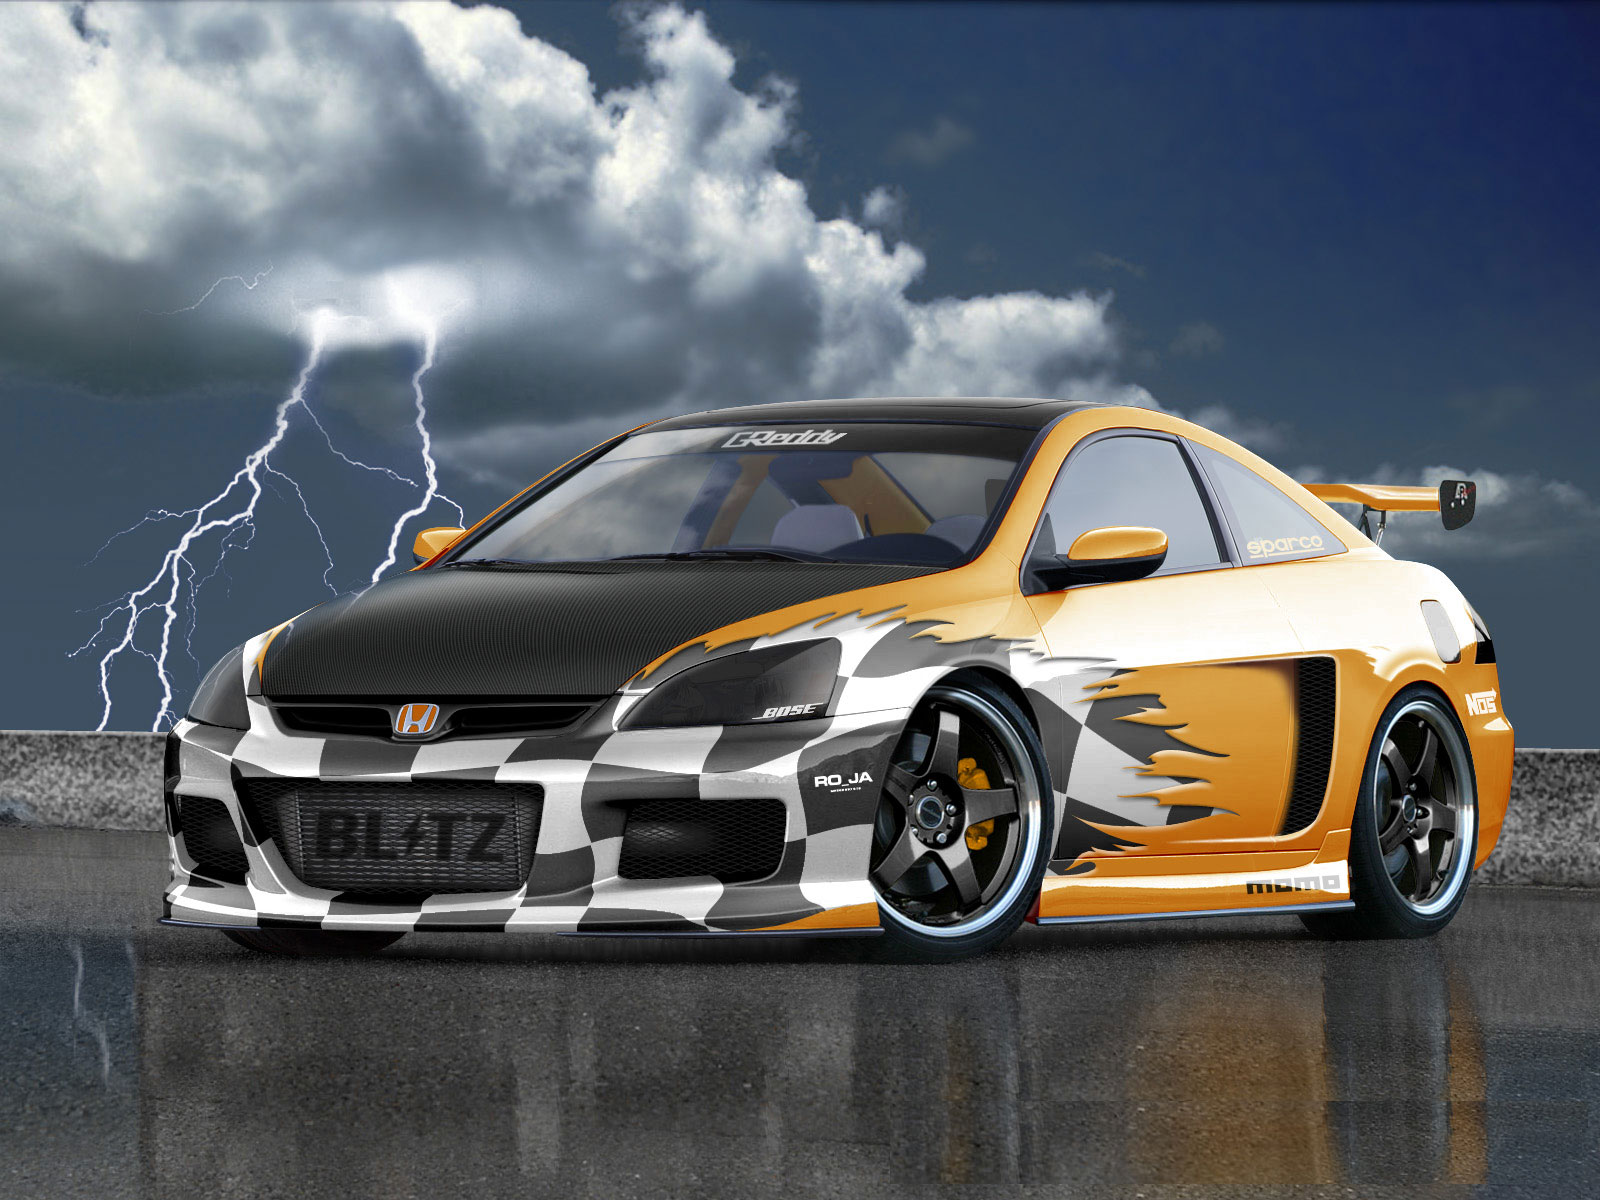 Cool Wallpapers HD: Cars Cool Wallpapers HD